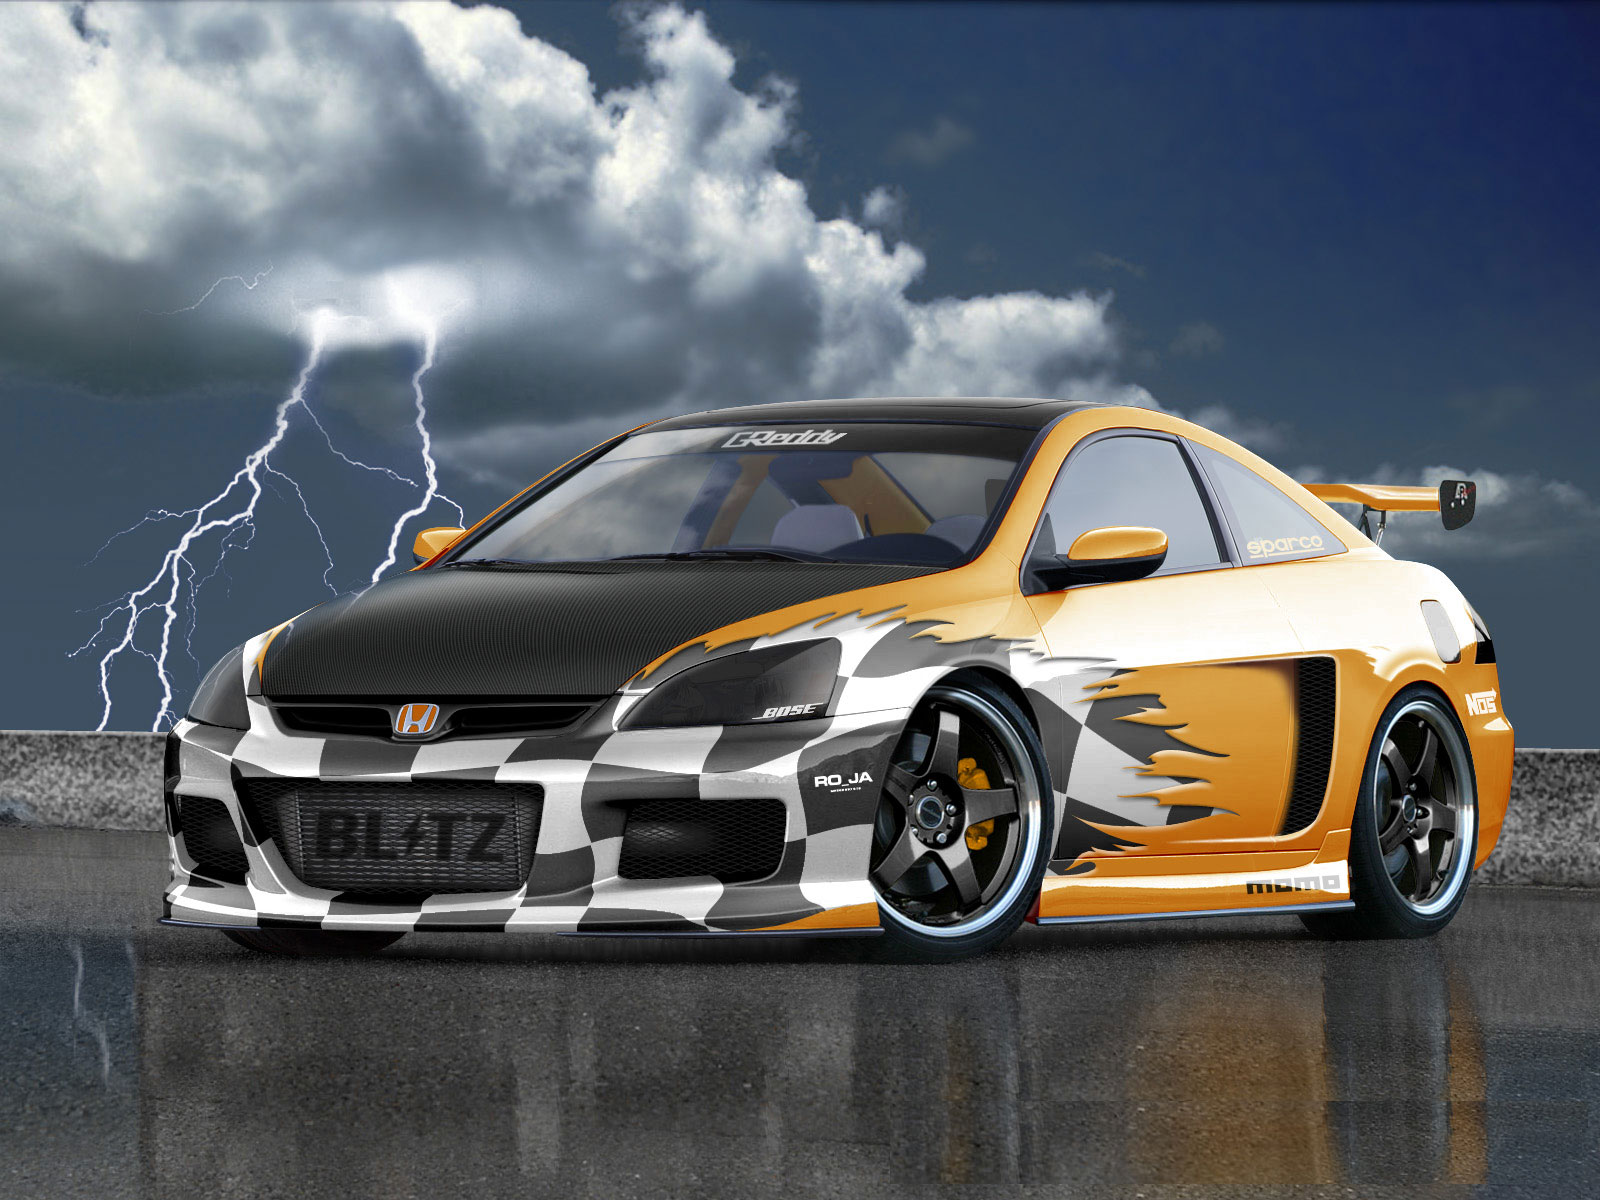 Cool Wallpapers HD: Cars Cool Wallpapers HD